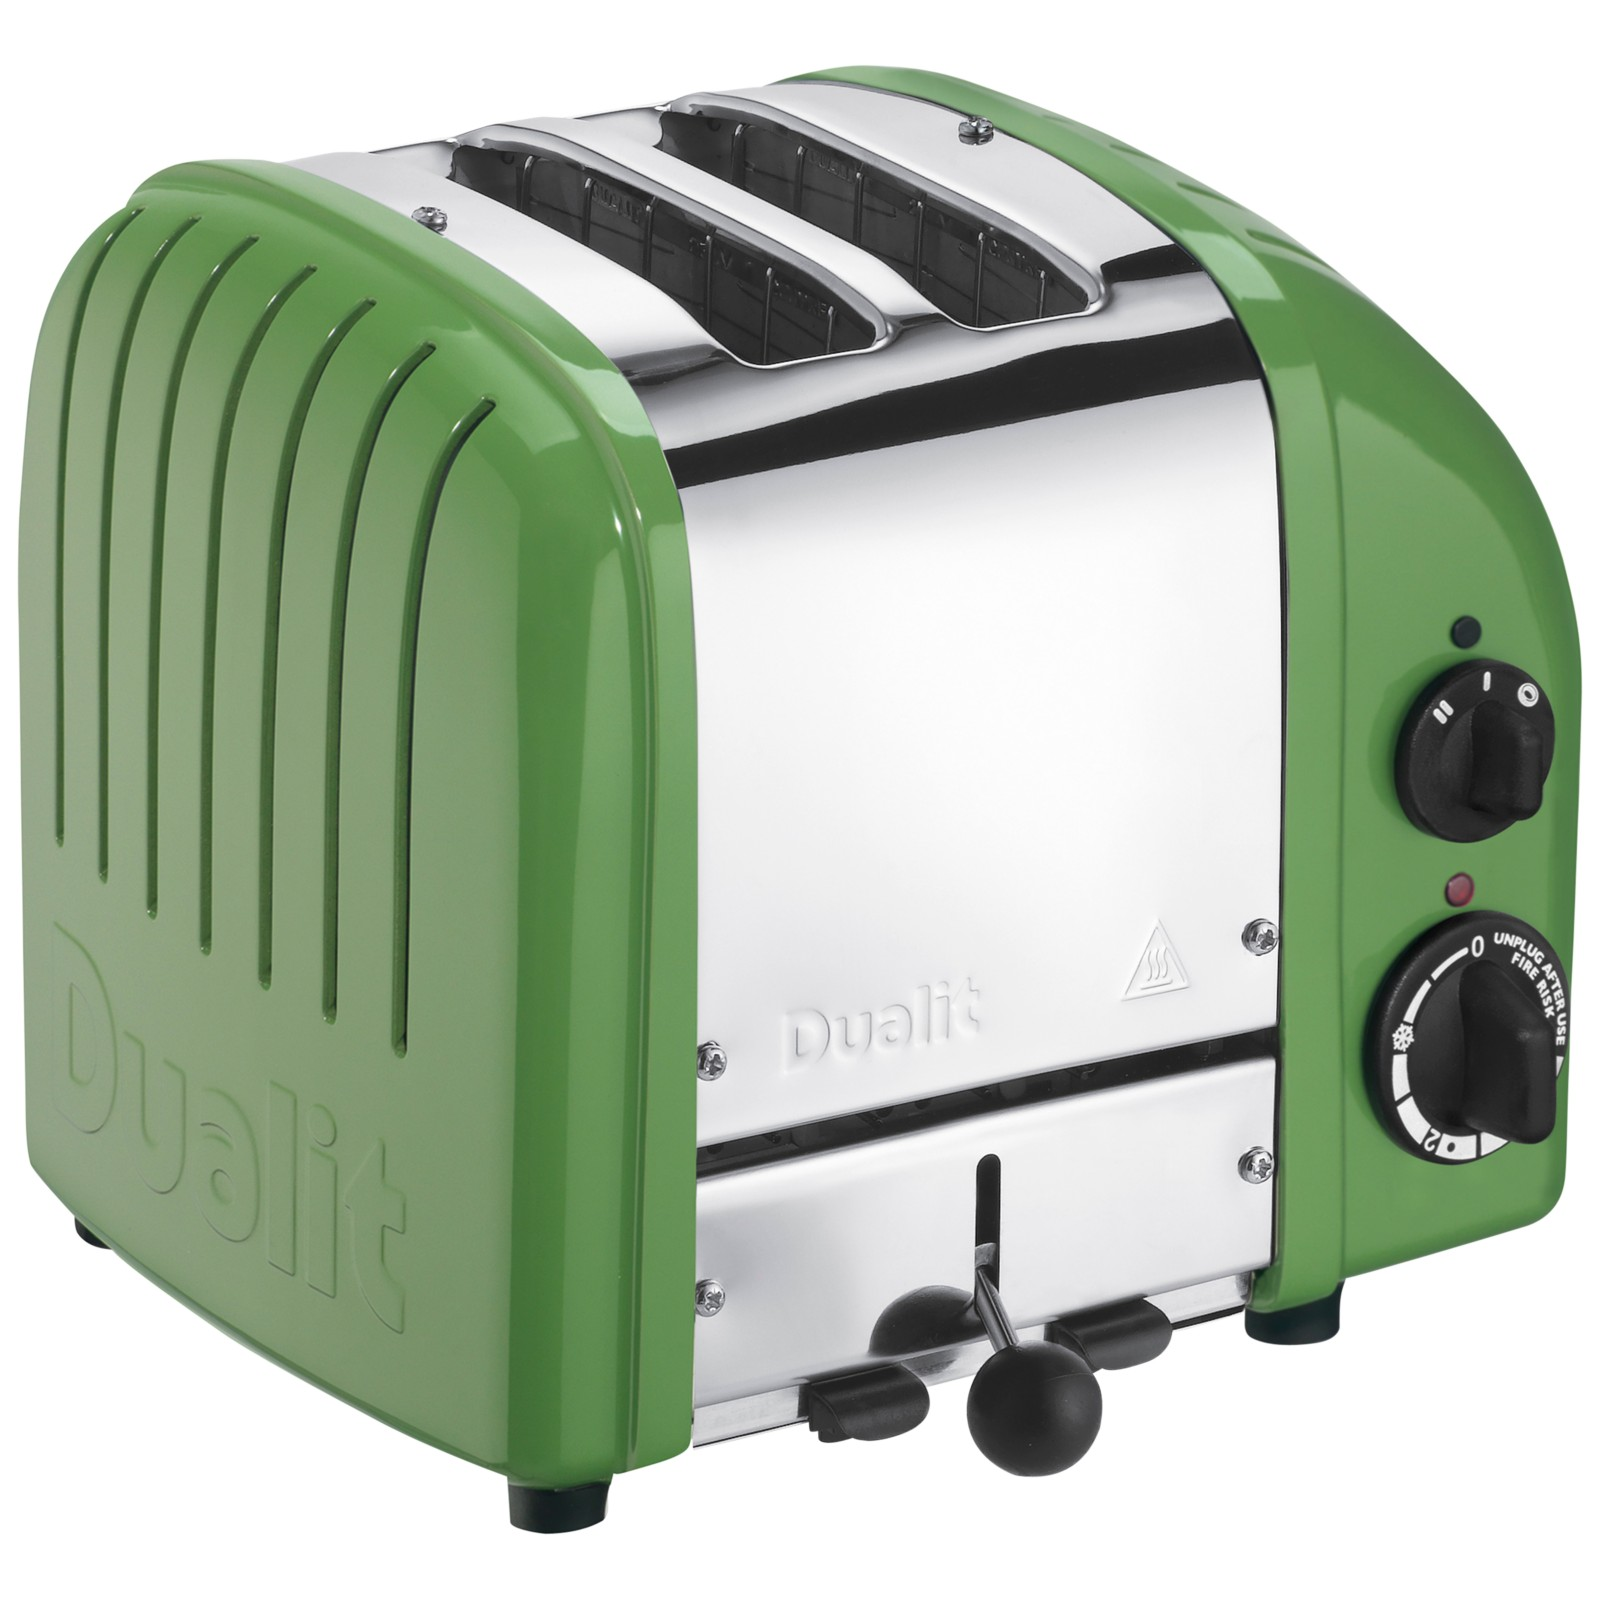 Dualit Made to Order Classic 2-Slice Toaster Stainless Steel/Reseda Green Gloss